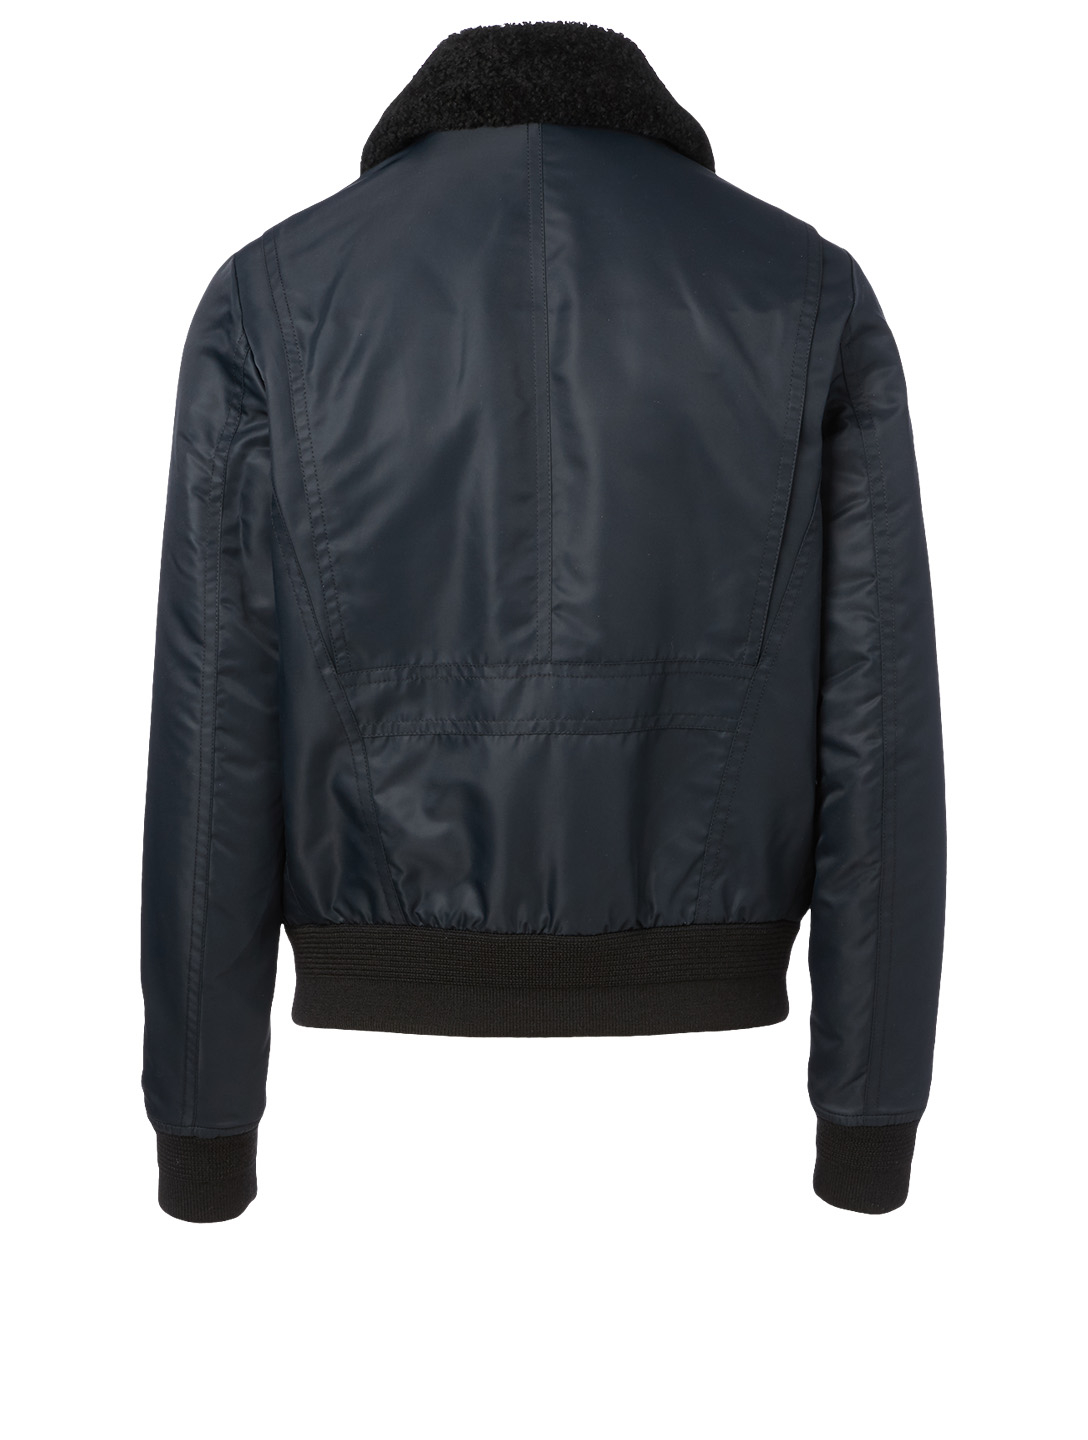 SAINT LAURENT Shearling Bomber Jacket Men's Blue